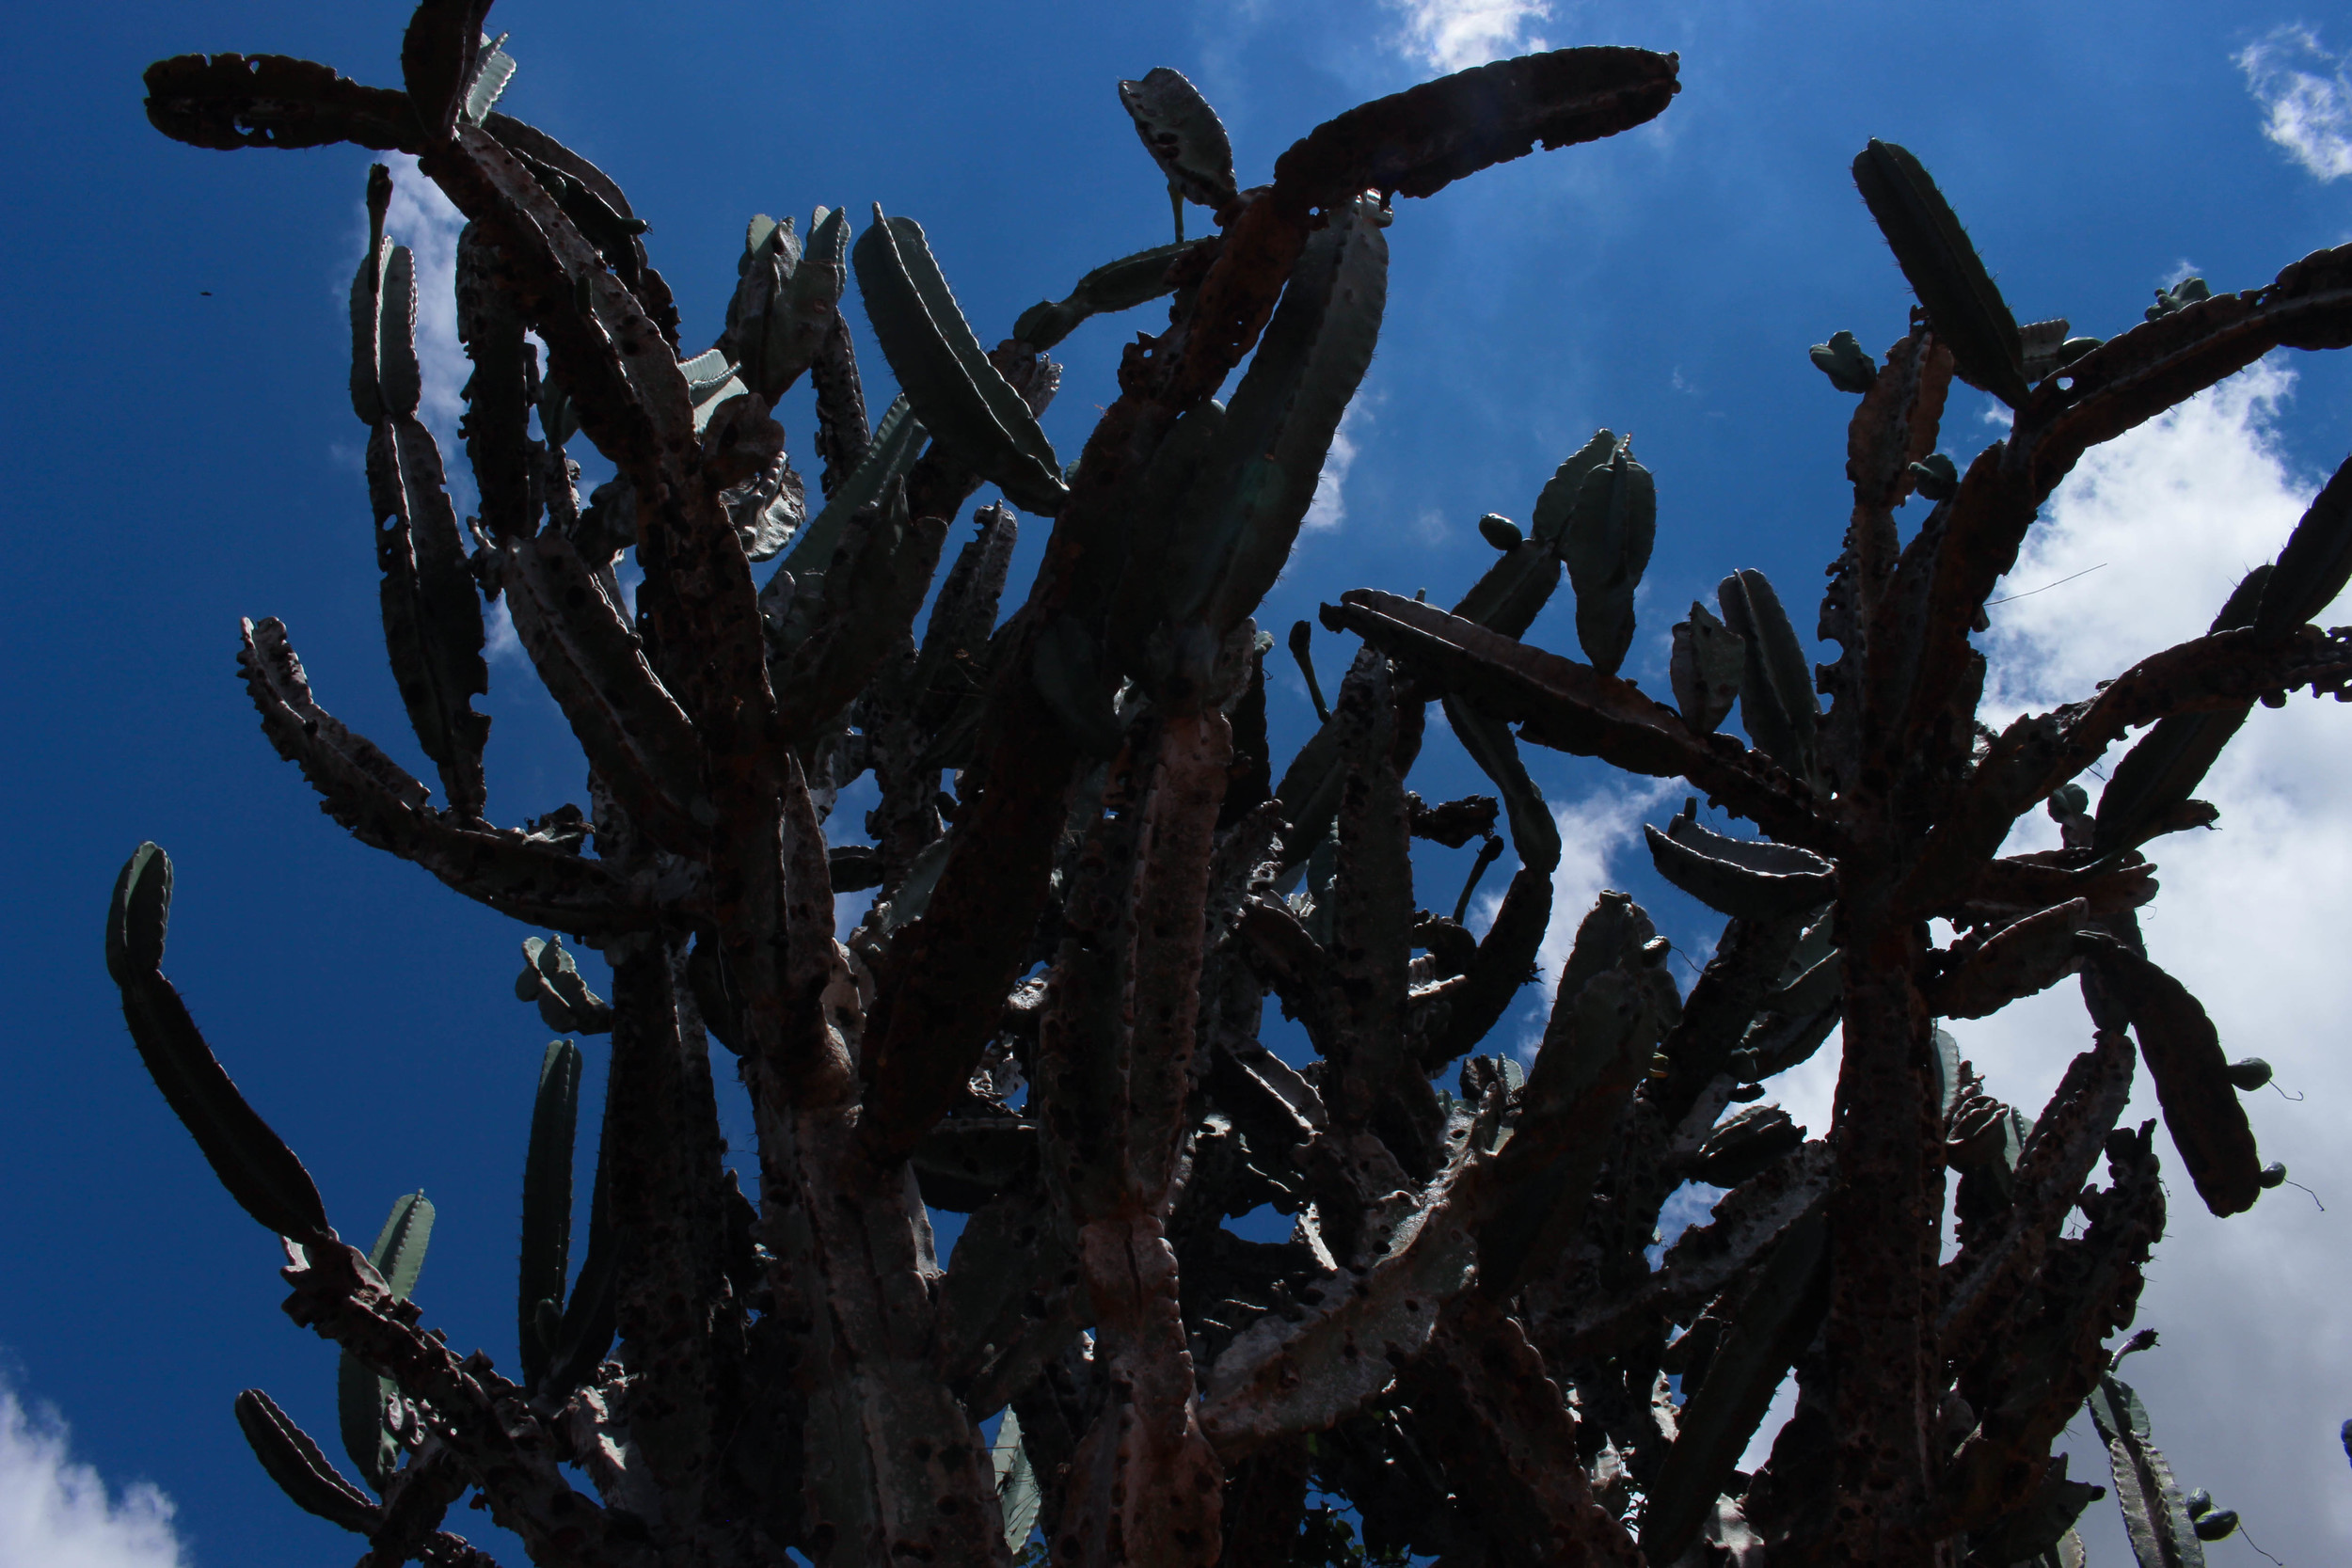 These giant cactus trees were everywhere in that region.